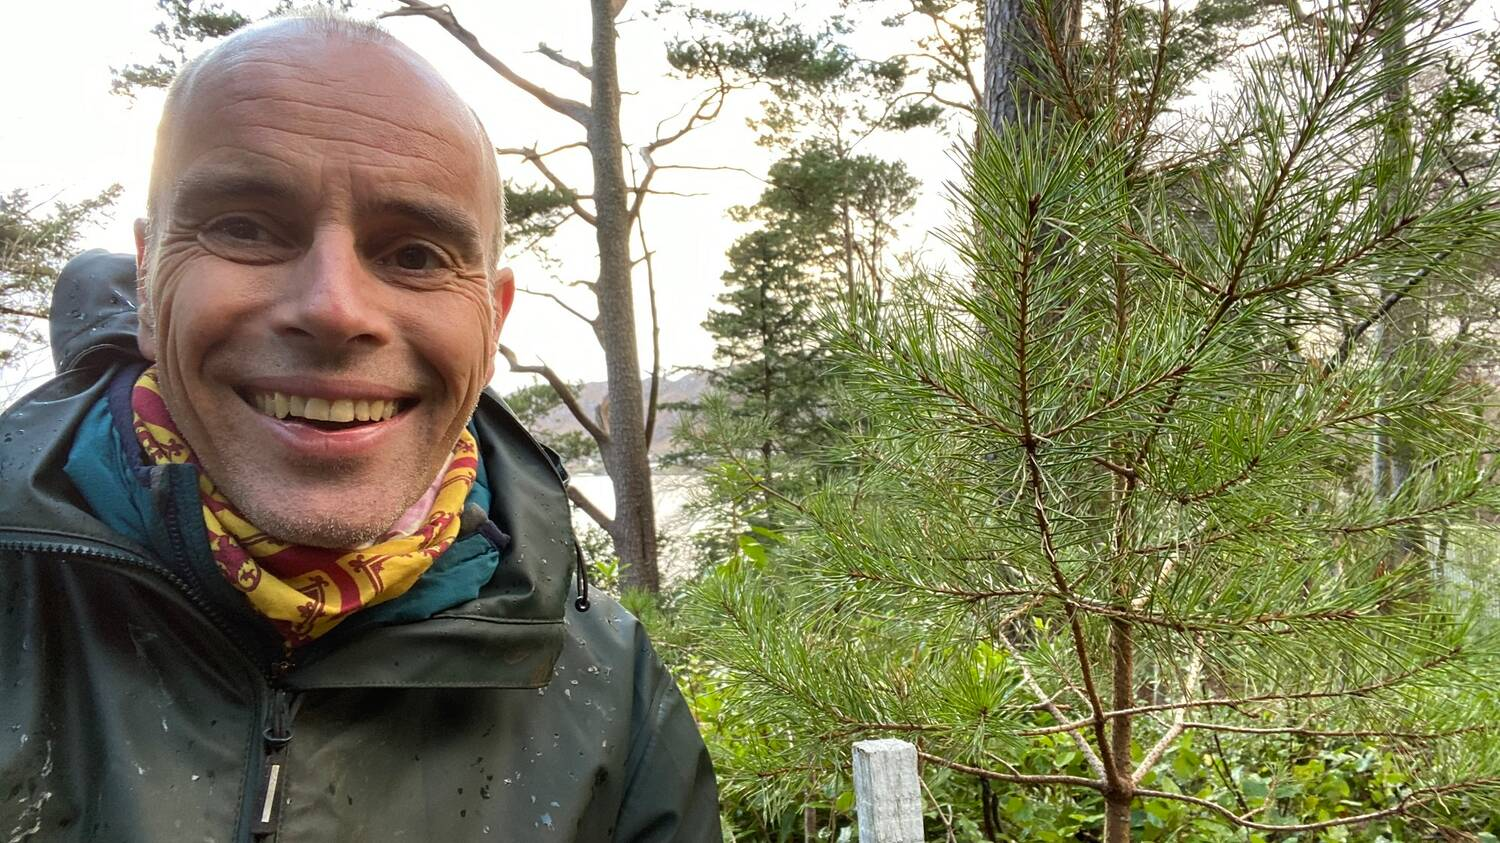 A close-up photo of a man, wearing waterproof clothing, standing in woodland beside a small pine tree. He is smiling.